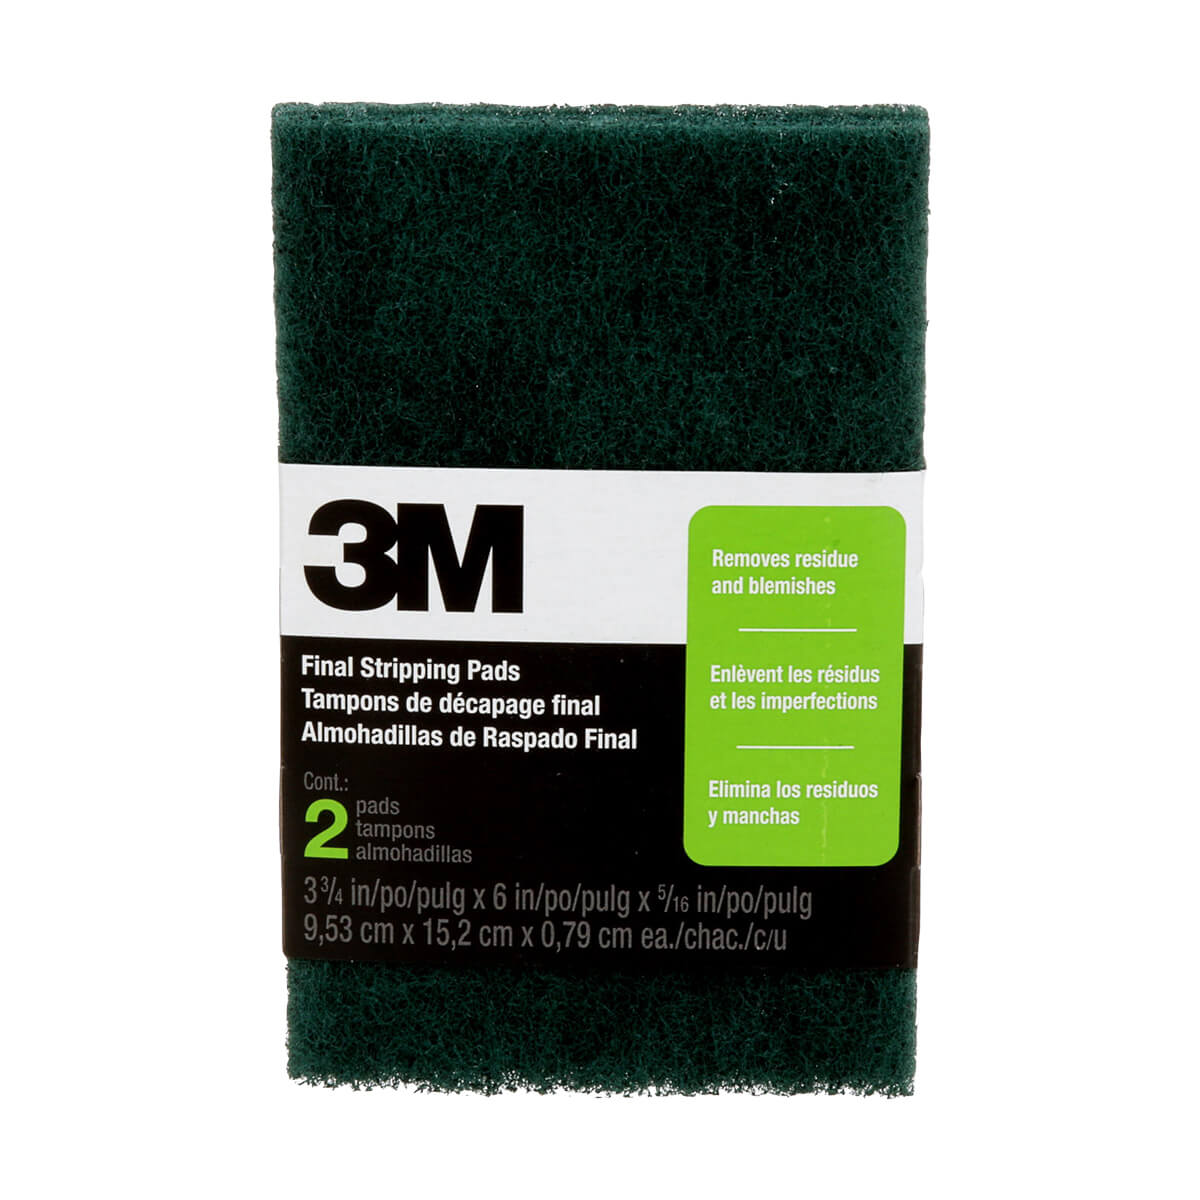 3M - Final Stripping Pad - 12-Pack